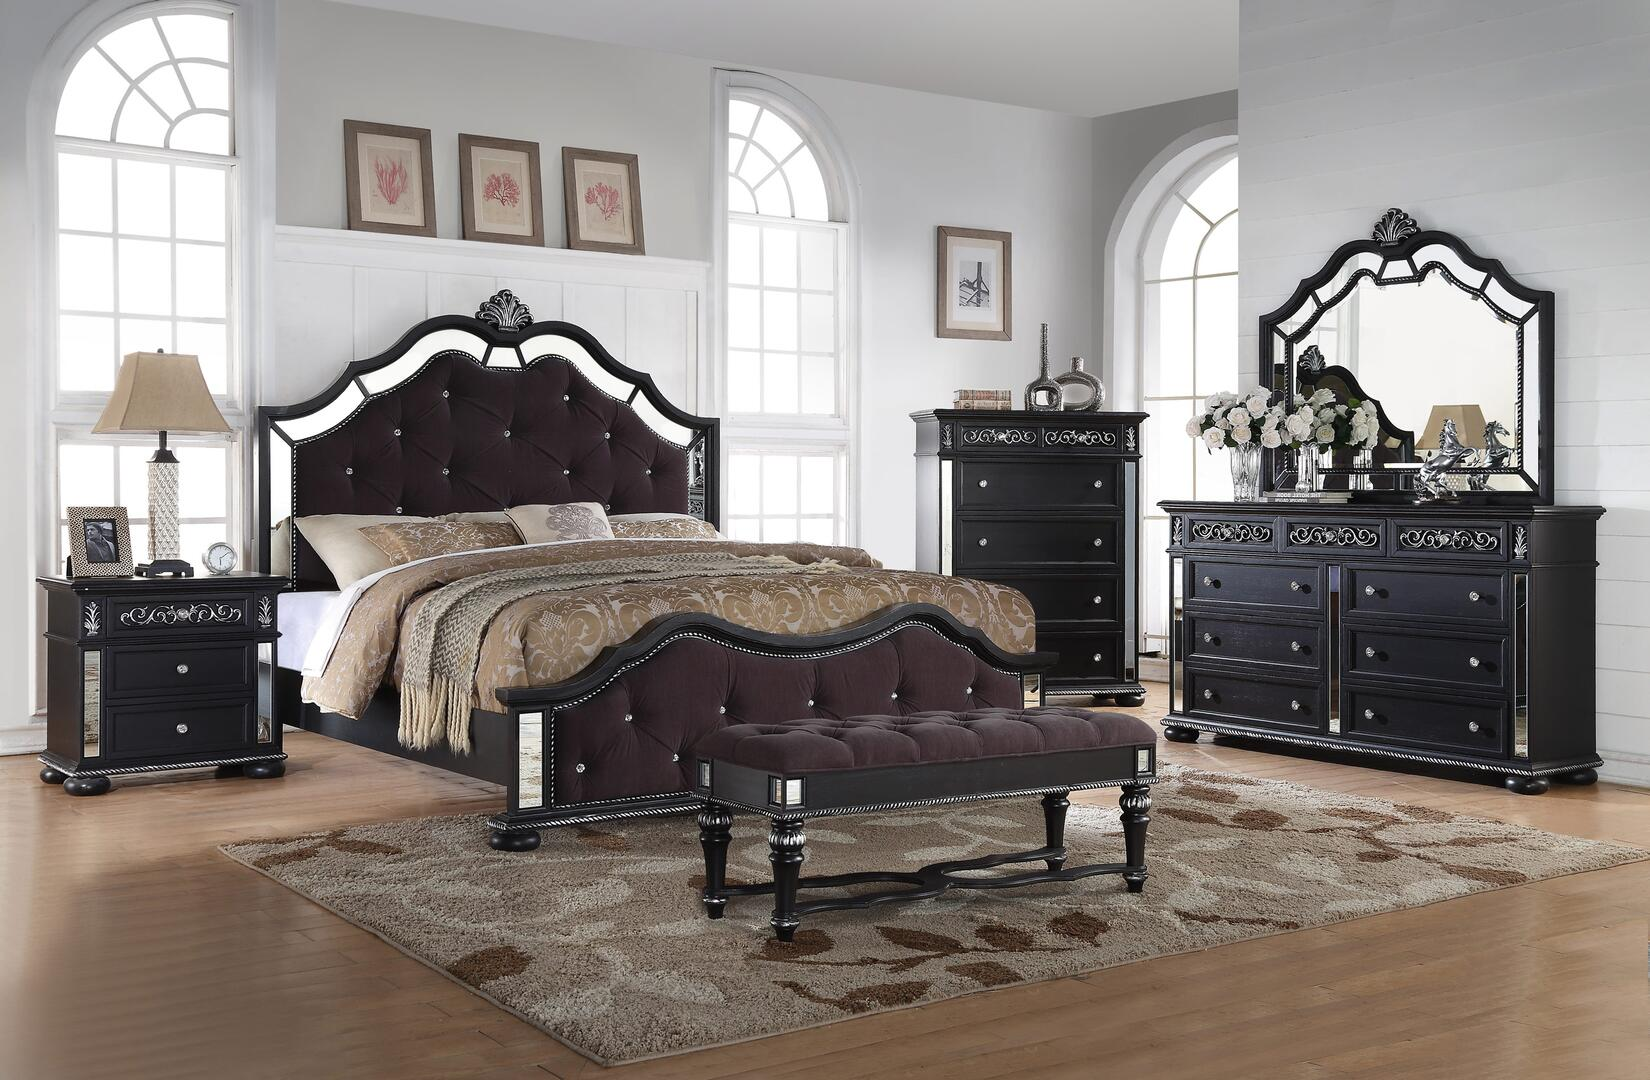 Myco Furniture Kelly 6 Piece Queen Size Bedroom Set